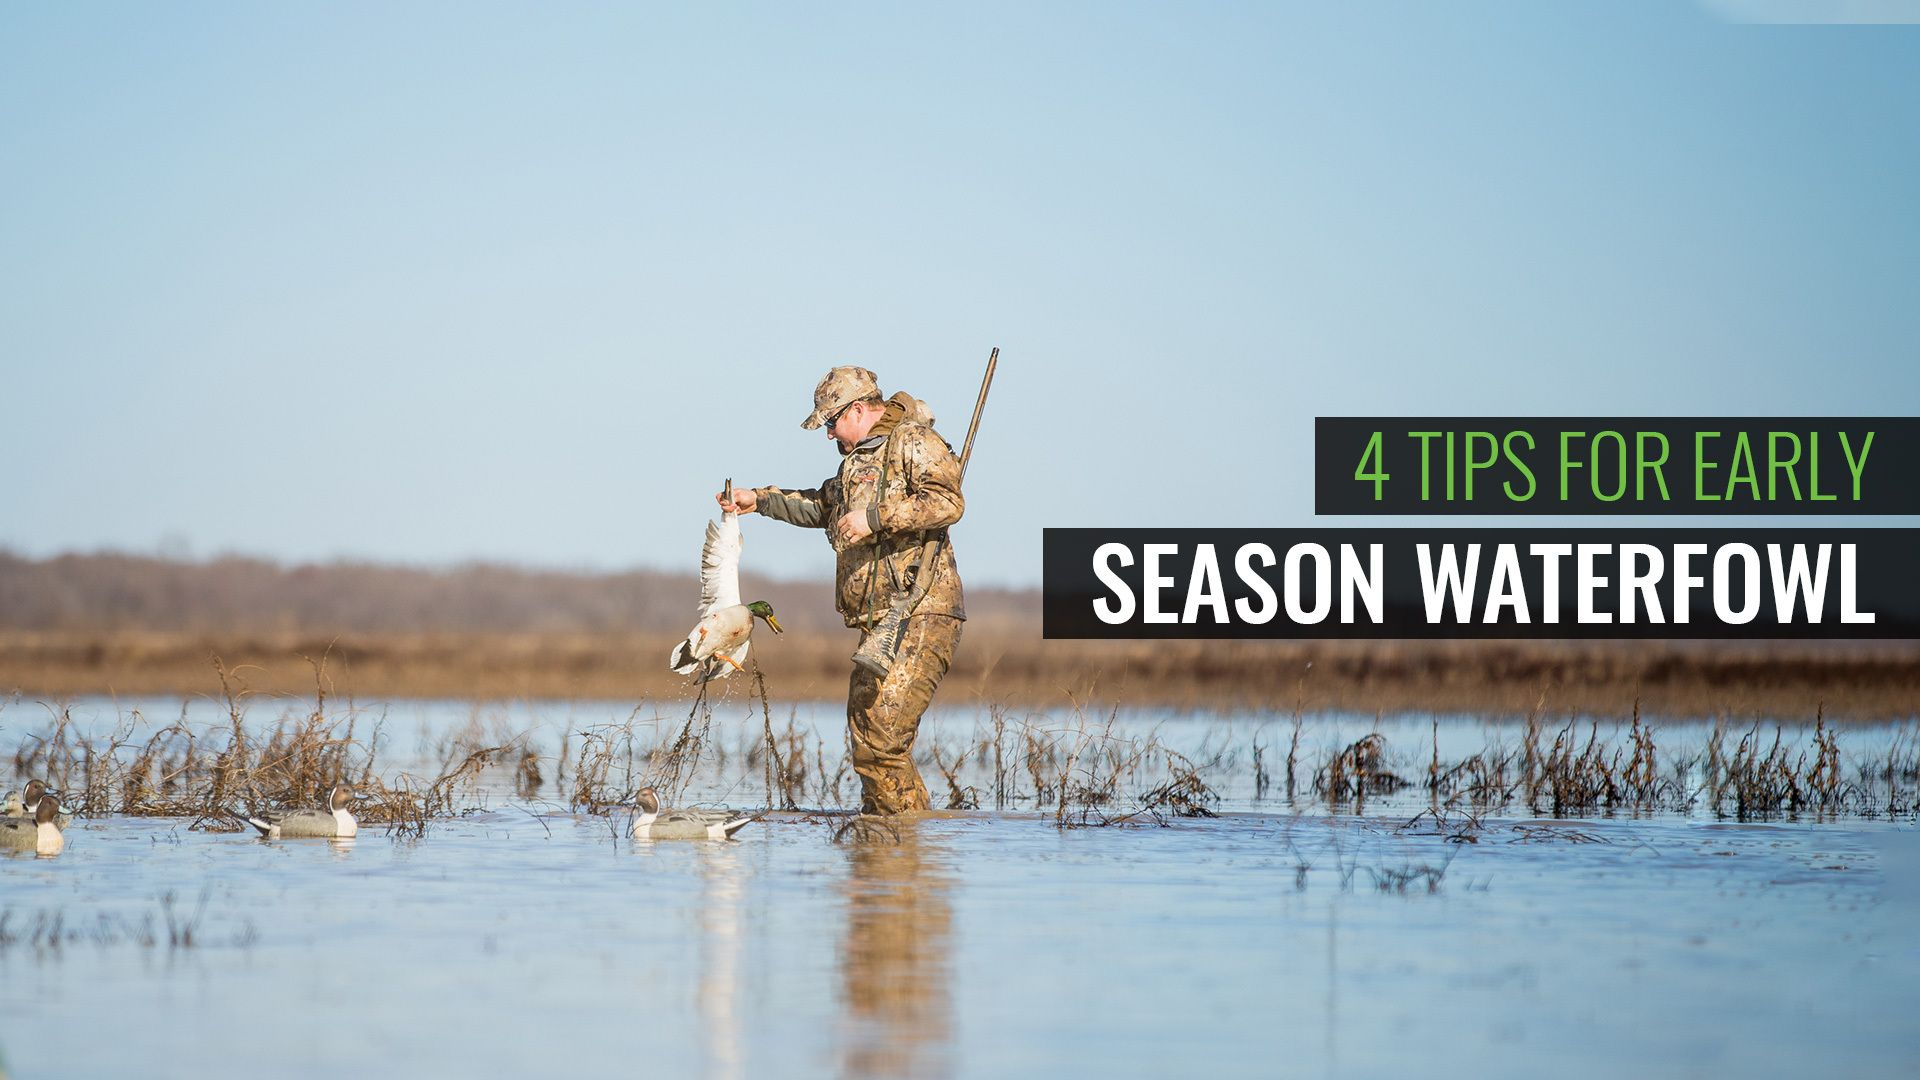 4 Must-Know Tips For This Duck Season